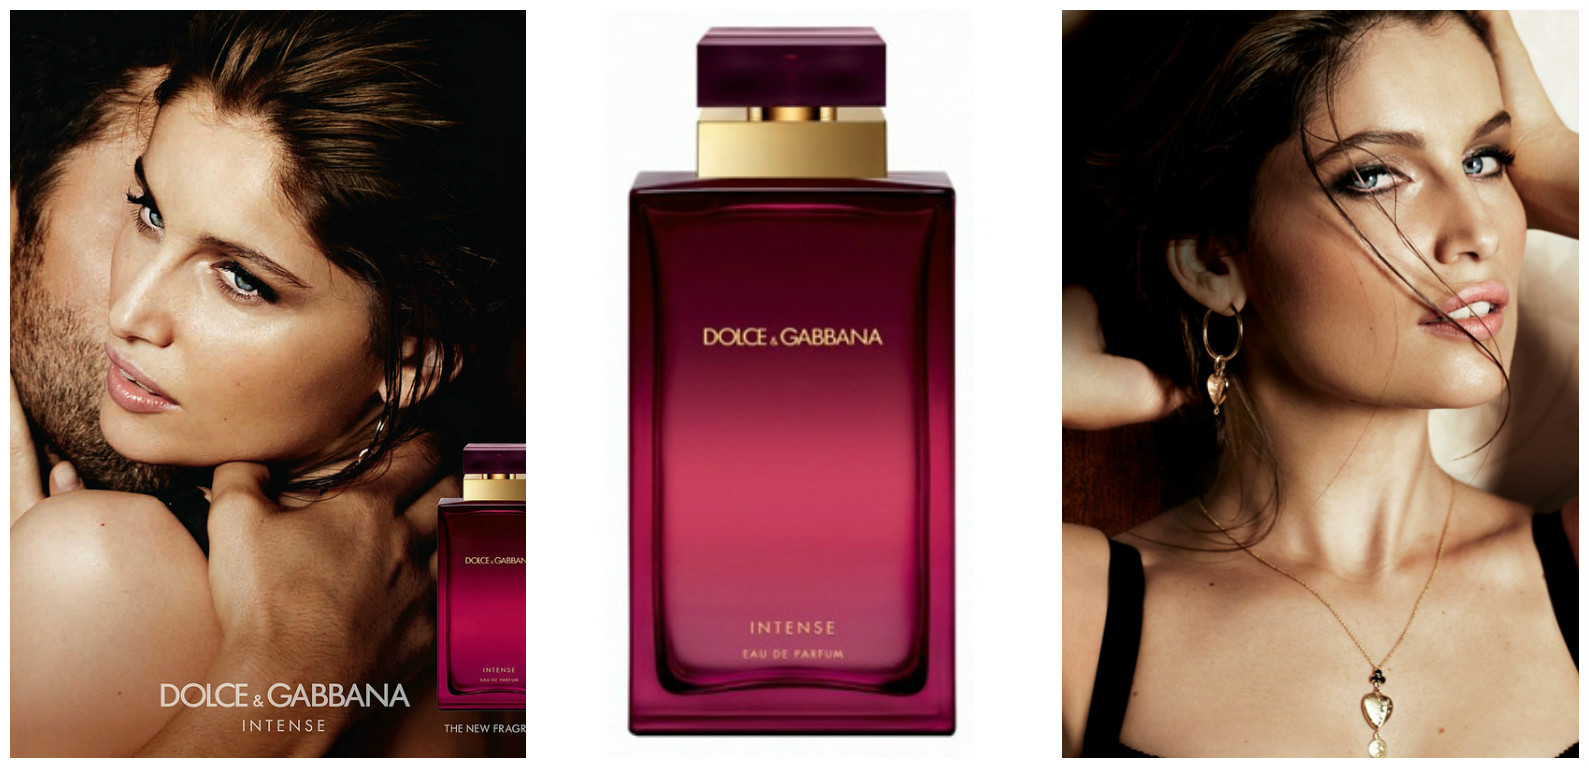 Perfume of the Day: Pour Femme Intense by Dolce&Gabbana